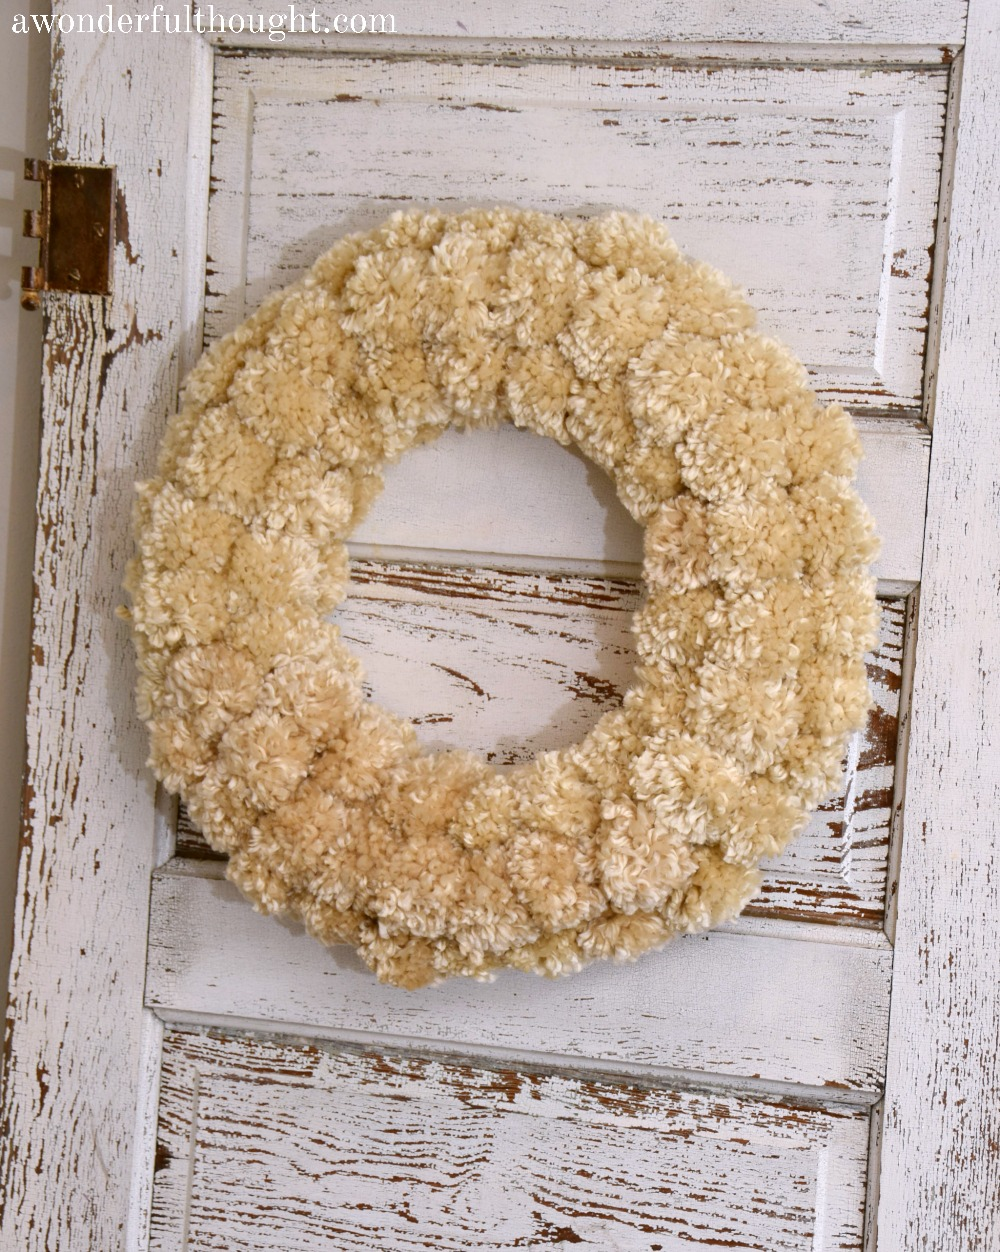 DIY Winter Pom Pom Wreath | awonderfulthought.com